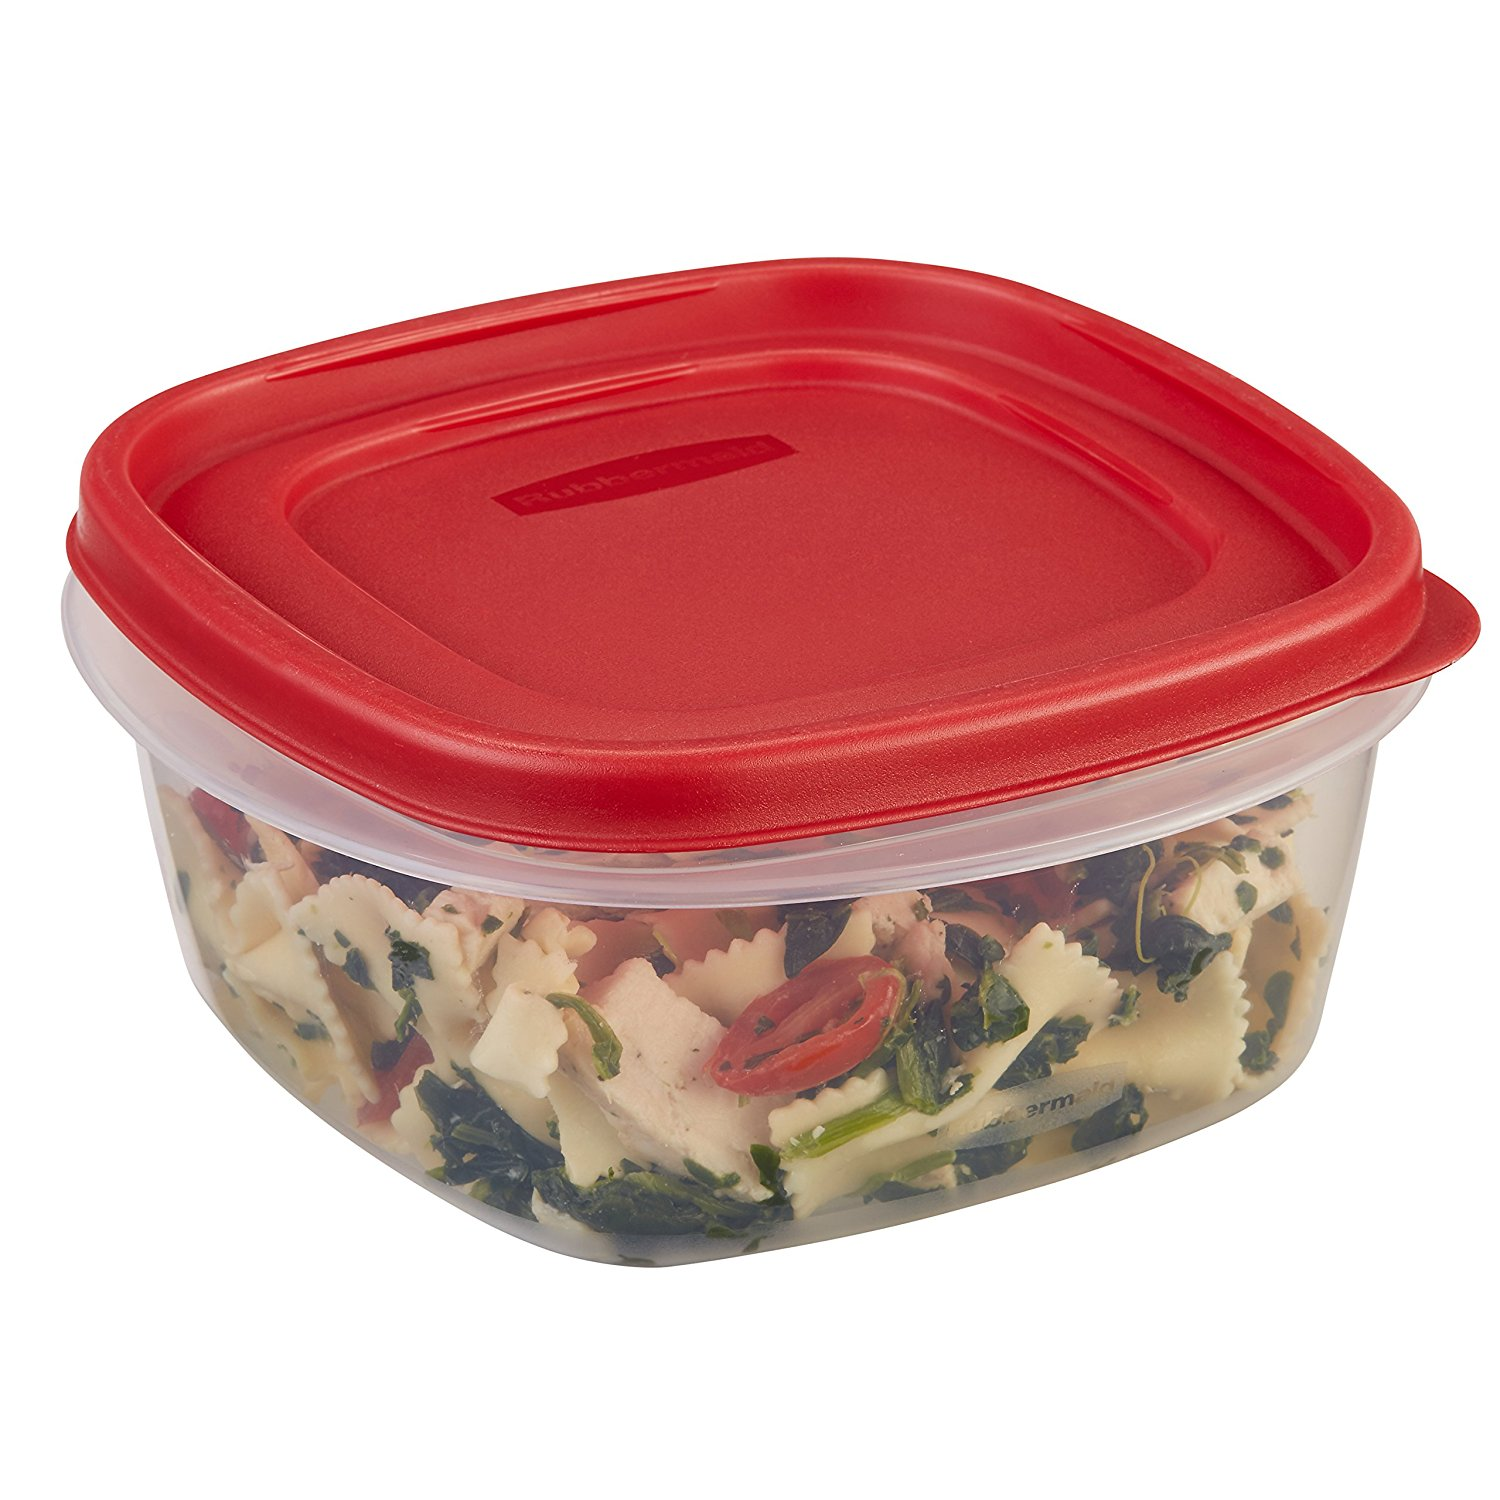 Rubbermaid Easy Find Lid Food Storage Container BPA Free Plastic 5